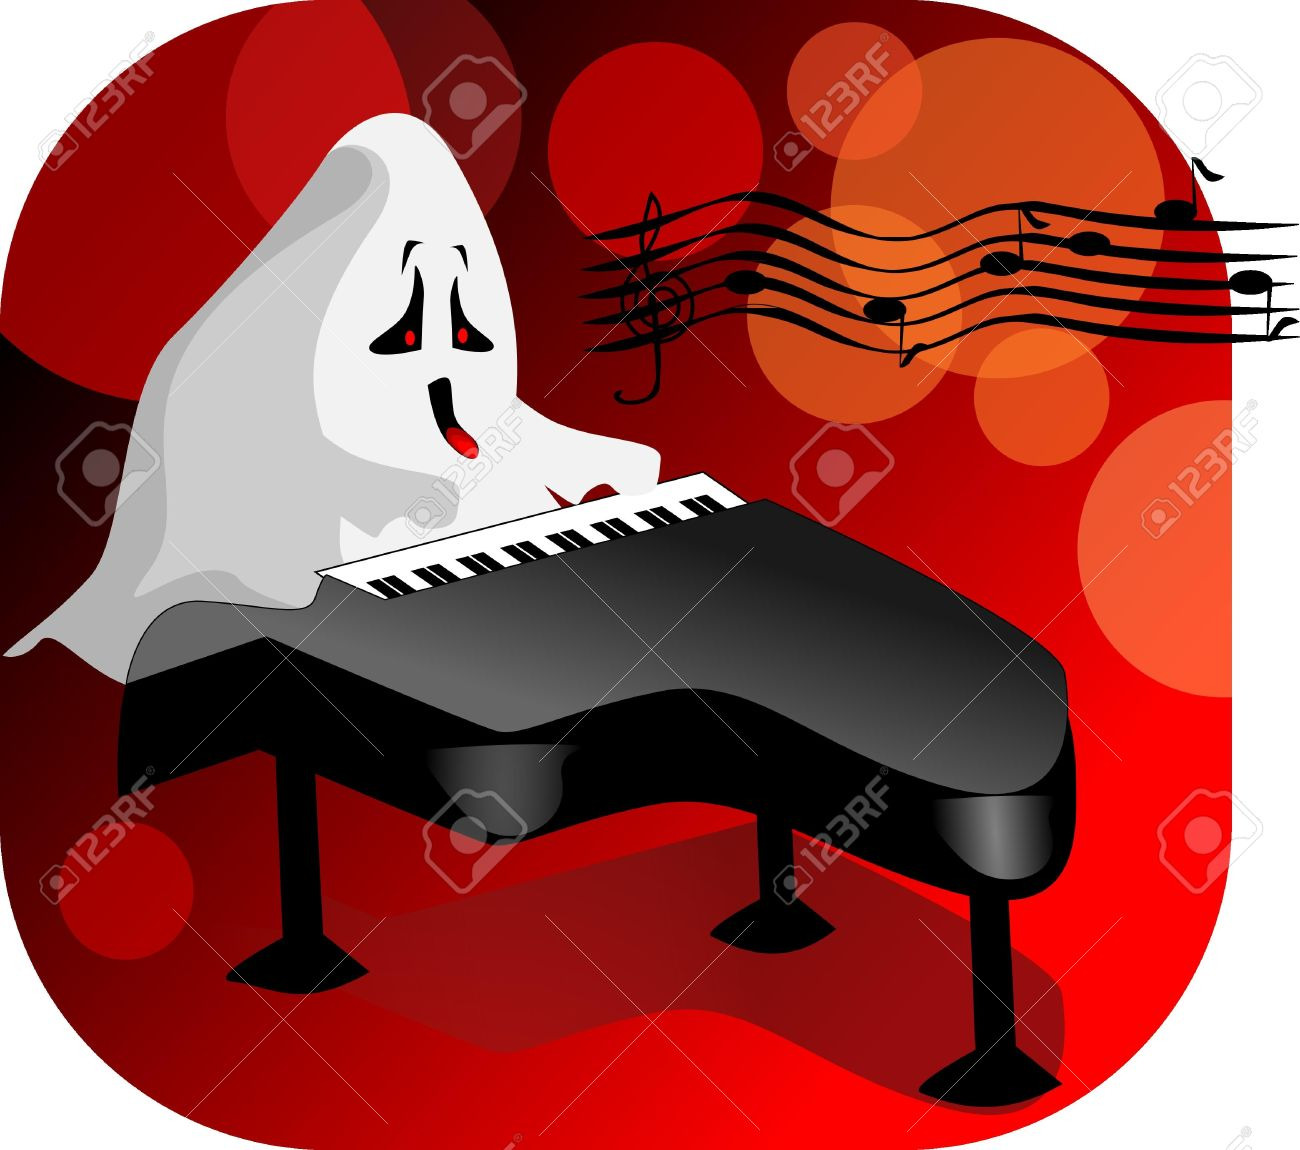 https://i1.wp.com/previews.123rf.com/images/bruniewska/bruniewska1109/bruniewska110900019/10689148-Spirit-at-the-piano-Illustration-of-a-ghost-playing-the-piano-Stock-Vector.jpg